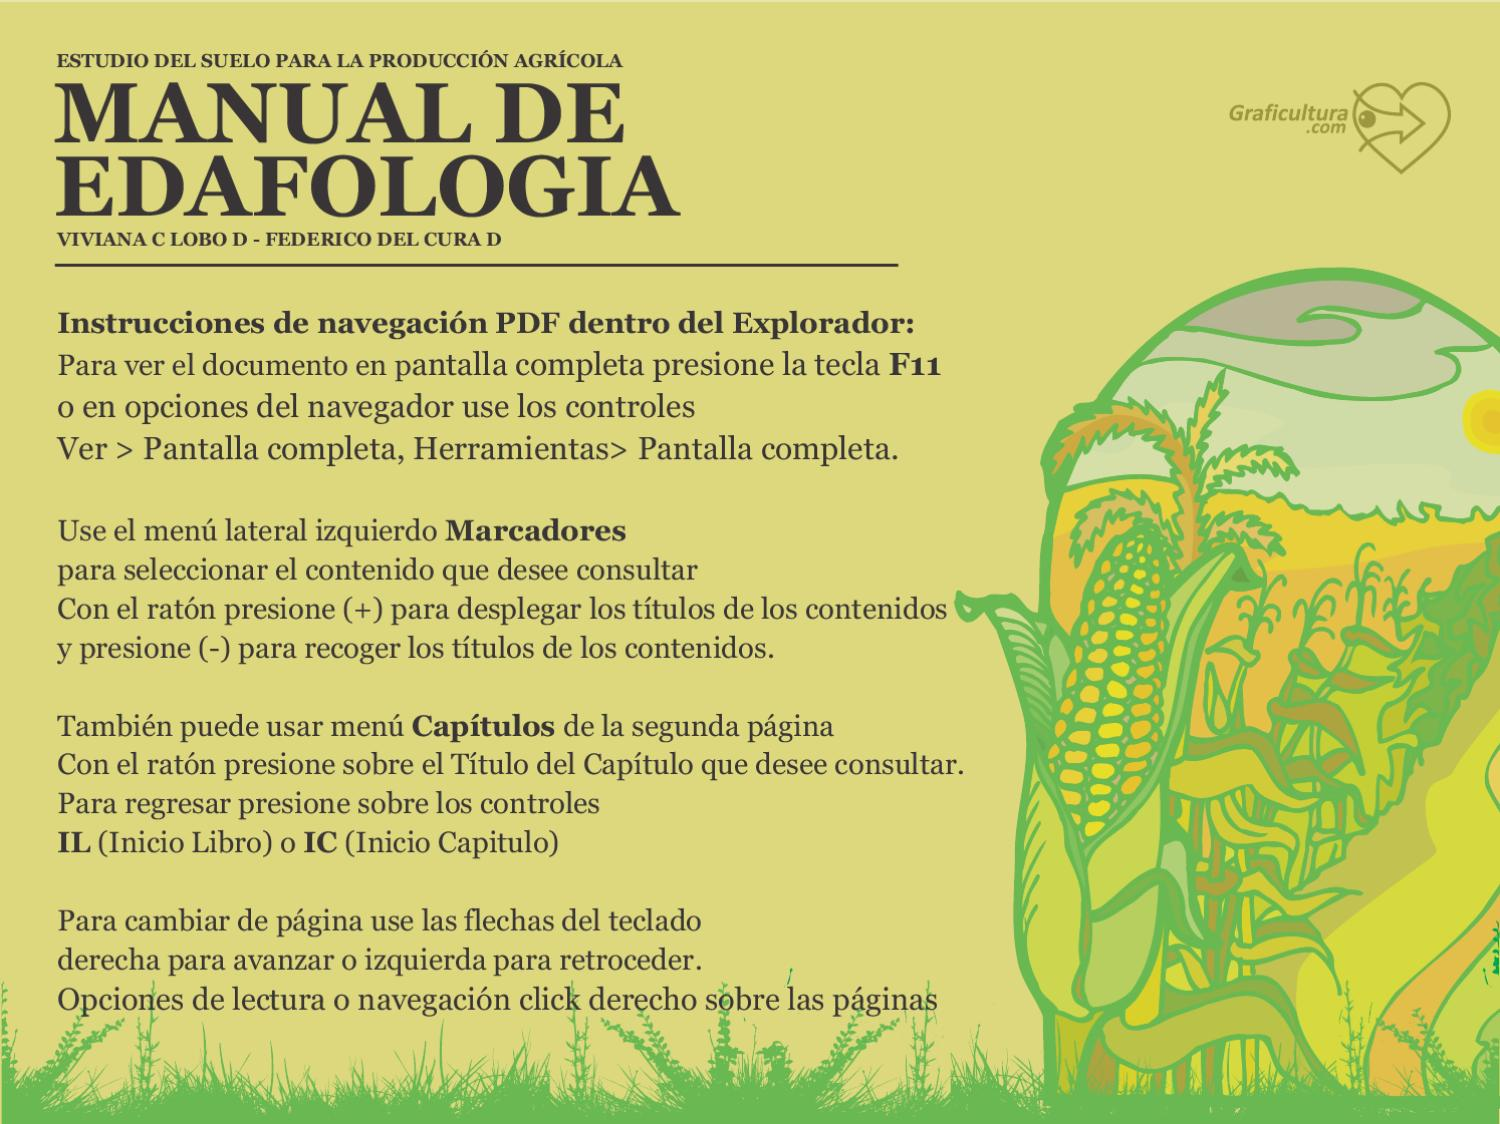 Manual de Edafologia by graficultura - issuu